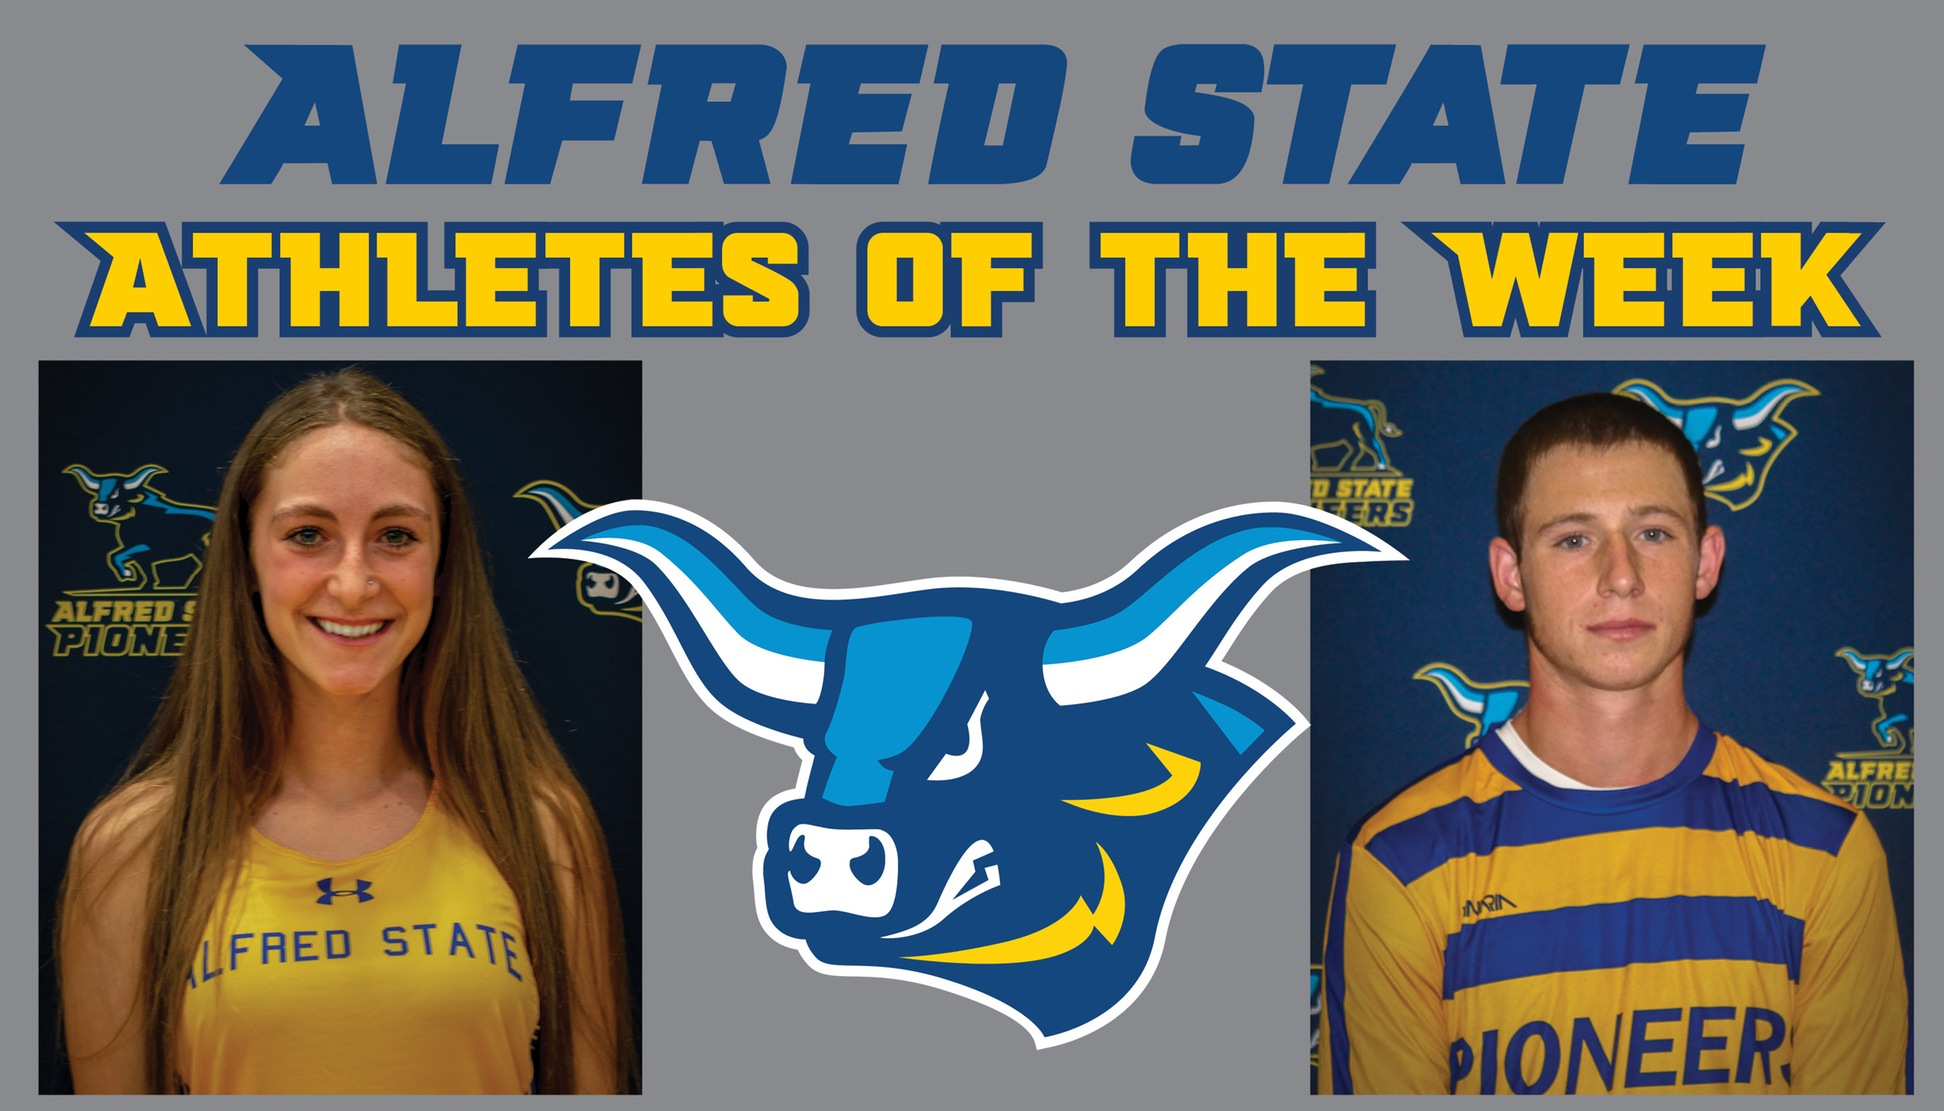 Veronica Dailey and Justus Hoffmann Named Alfred State Athletes of the Week.